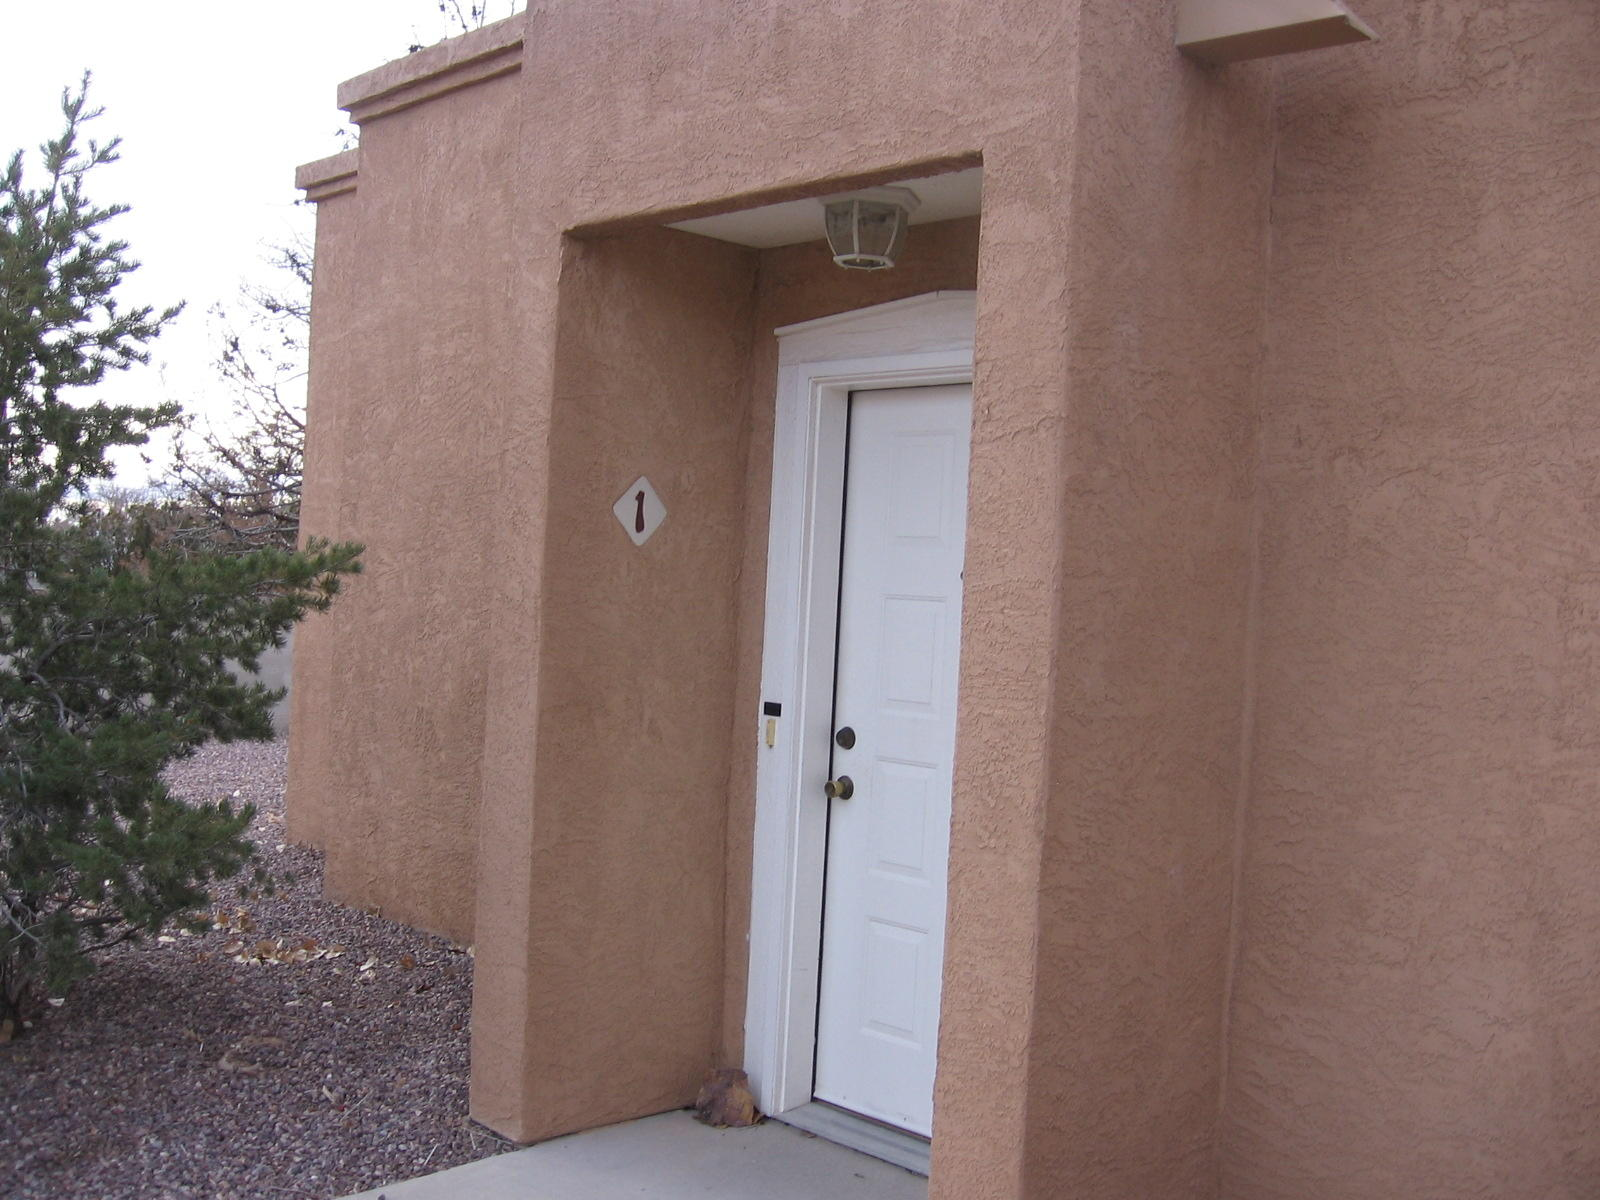 This 2 bedroom, 2 bath condo has all the bells and whistles!!  Granite kitchen and bathrooms, Oak hardwood floors, USB charging ports in the kitchen hardwired to household electricity, rain fall shower heads in both bathrooms, skylights, under counter radio with remote control in kitchen.  One car garage with extra room for storage.  And all appliances included.  Great location just 2 blocks from NMT.